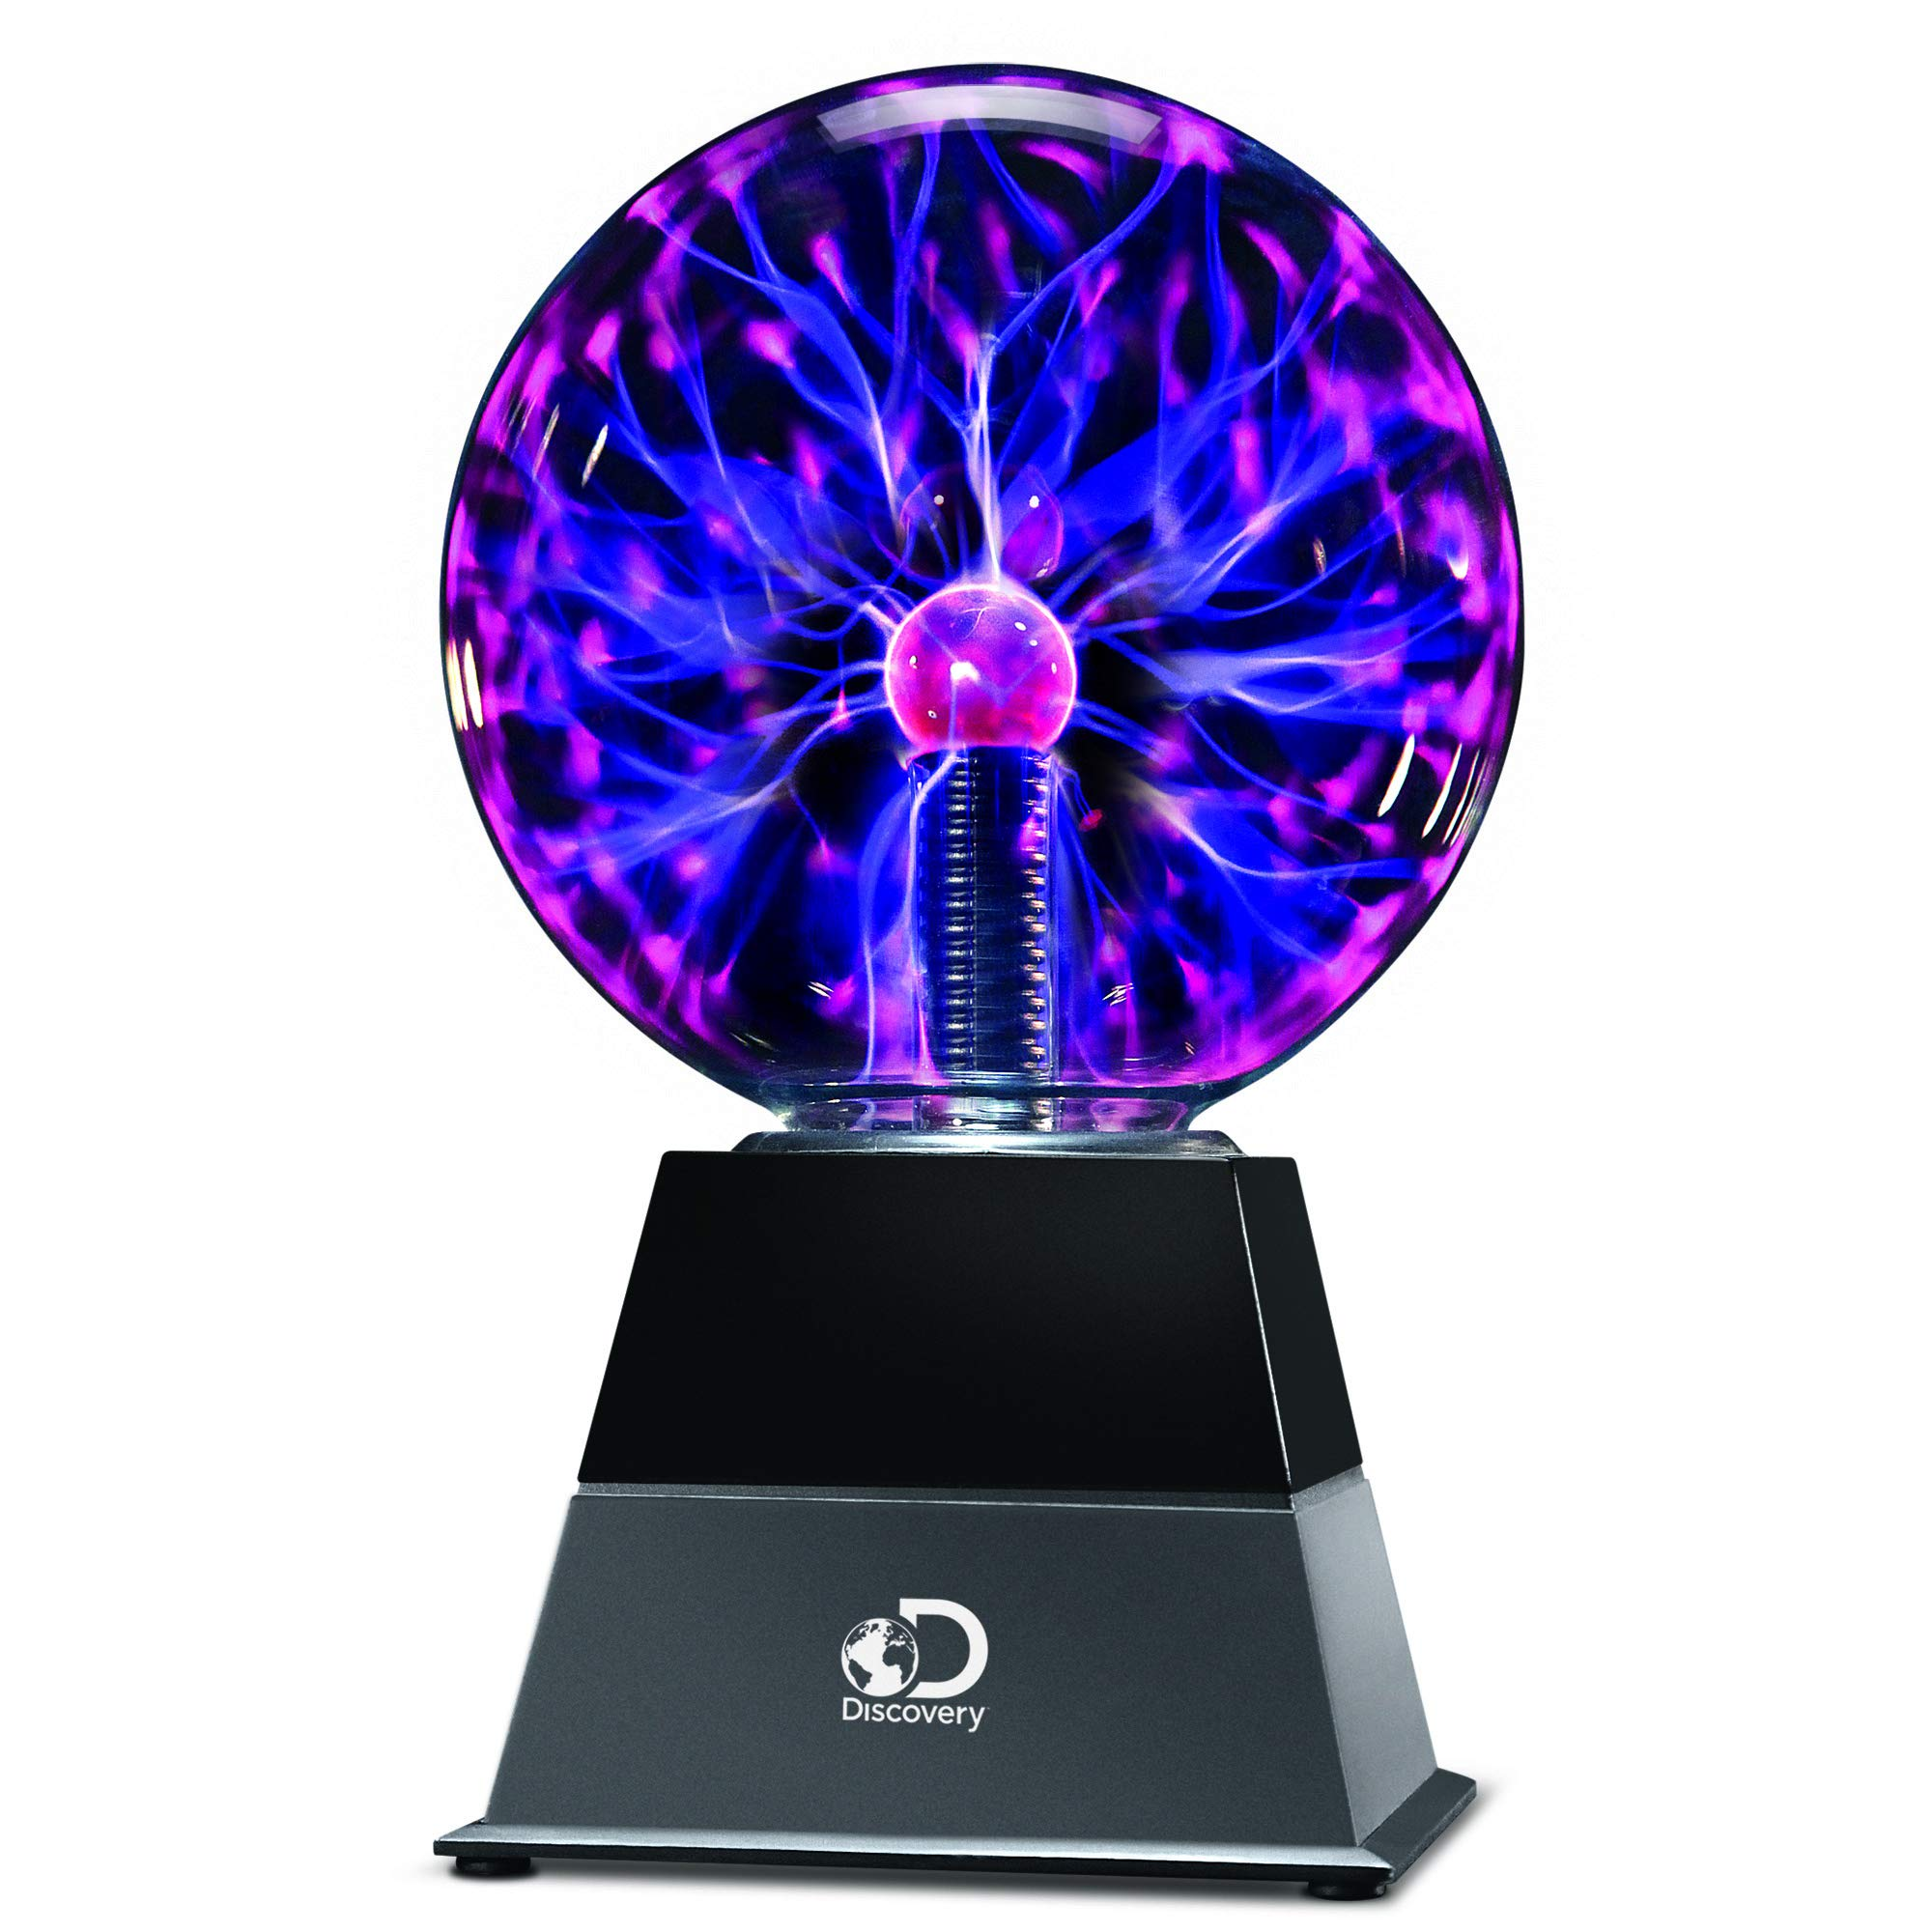 DISCOVERY KIDS 6'' Plasma Globe Lamp with Interactive Electronic Touch and Sound Sensitive Lightning and Tesla Coil, Includes AC Adapter, STEM Lava Lamp Style Light for Desk, Kids Room, and More